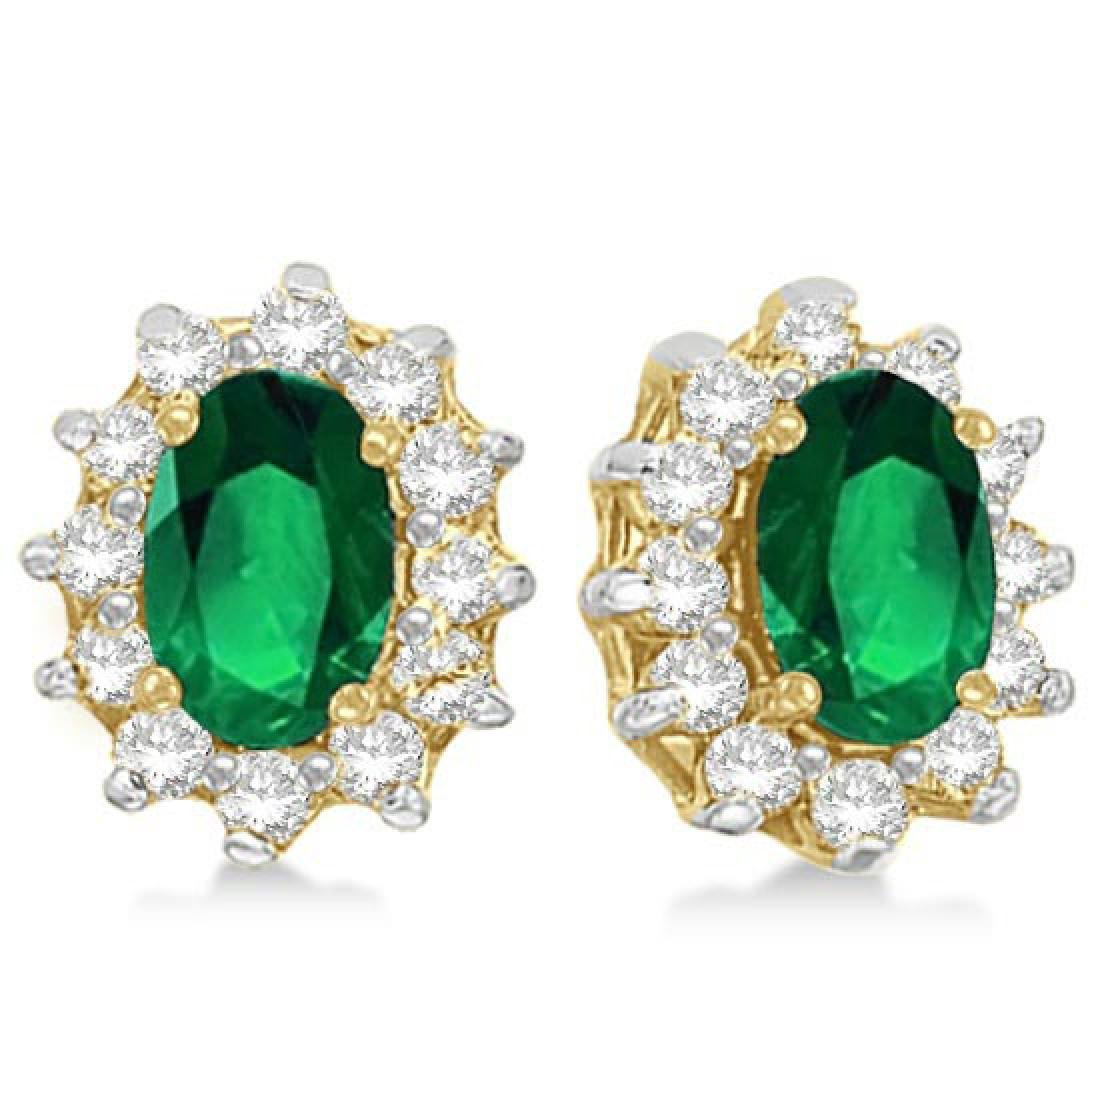 Oval Emerald and Diamond Accented Earrings 14k Yellow G